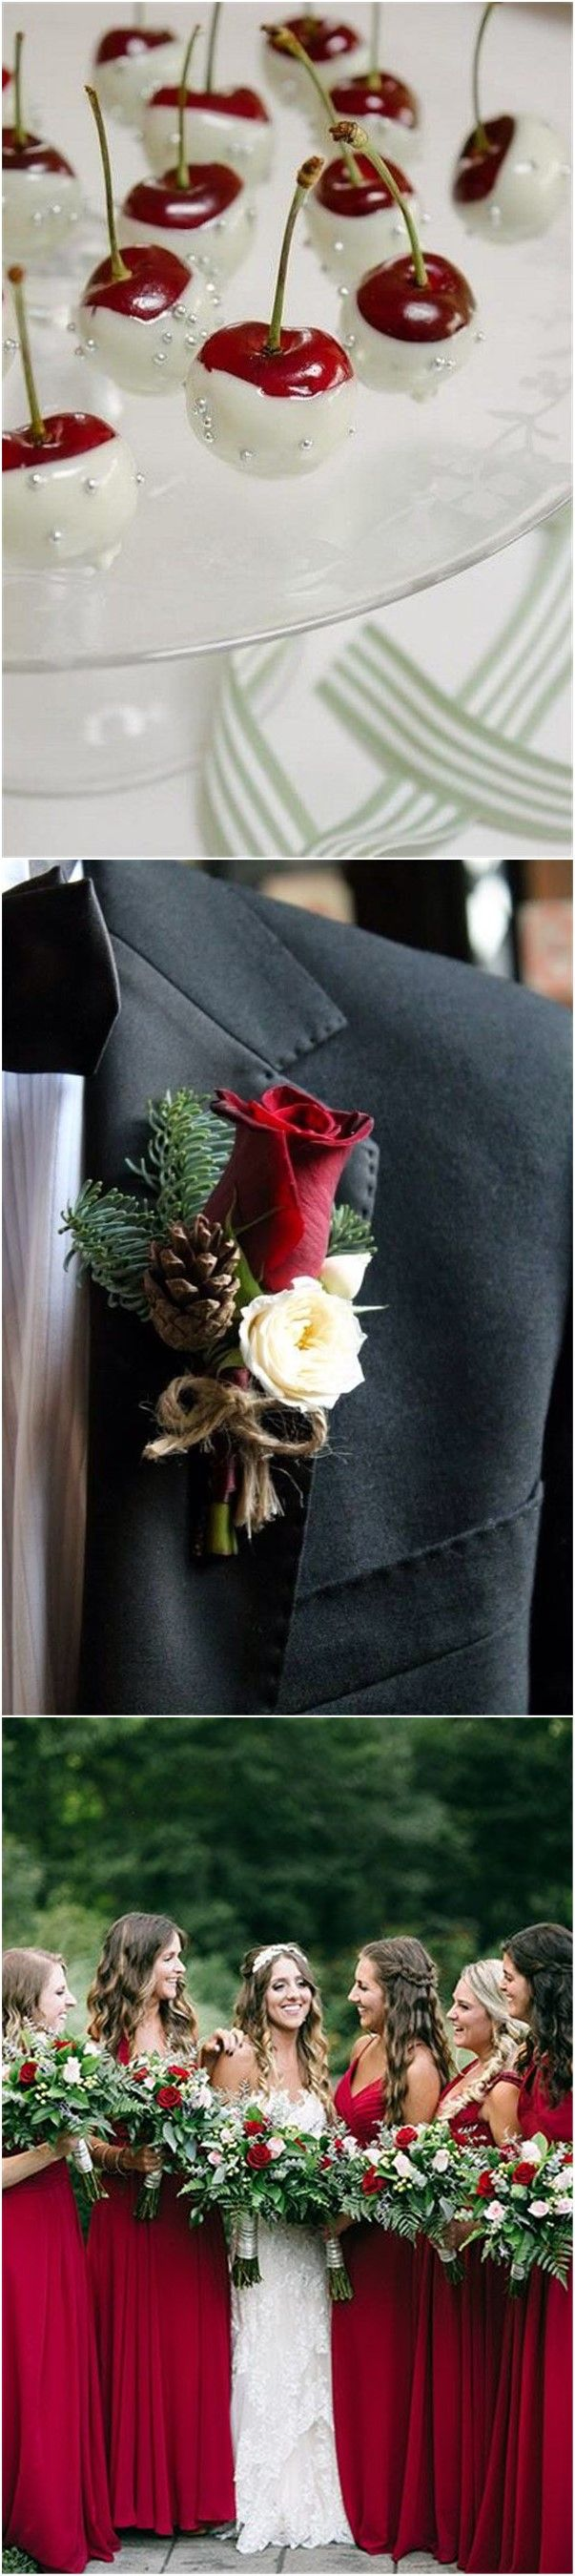 Wedding Colors»24 Eye-catching Red Winter Wedding Ideas You Will    Never Regret Having!